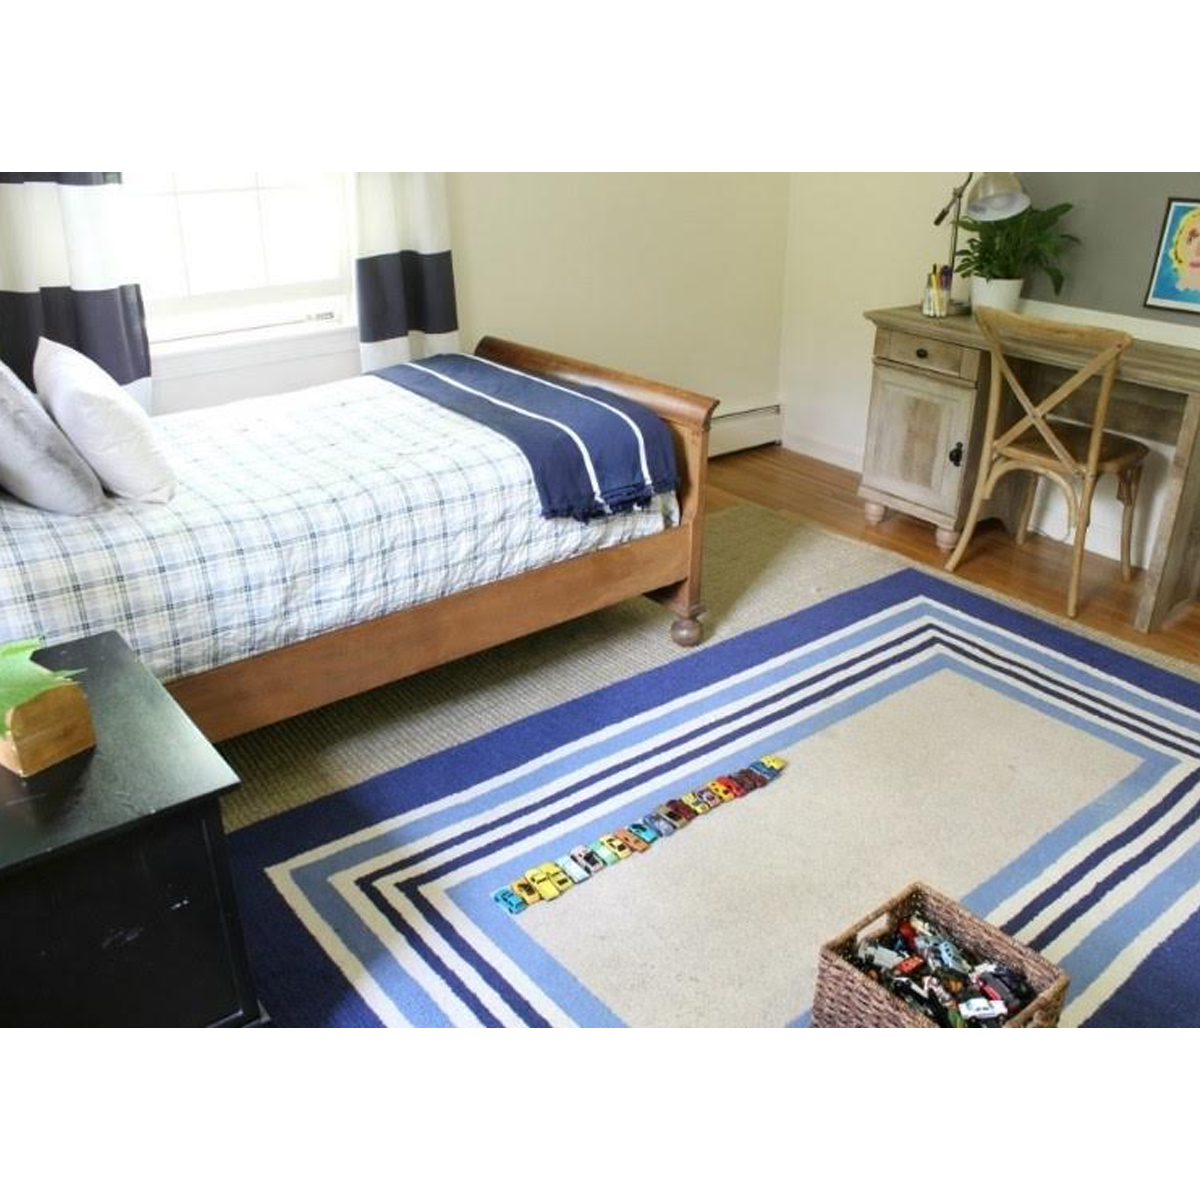 Boys bedroom with blue striped rug, wooden bed frame, and blue checker bedding photo